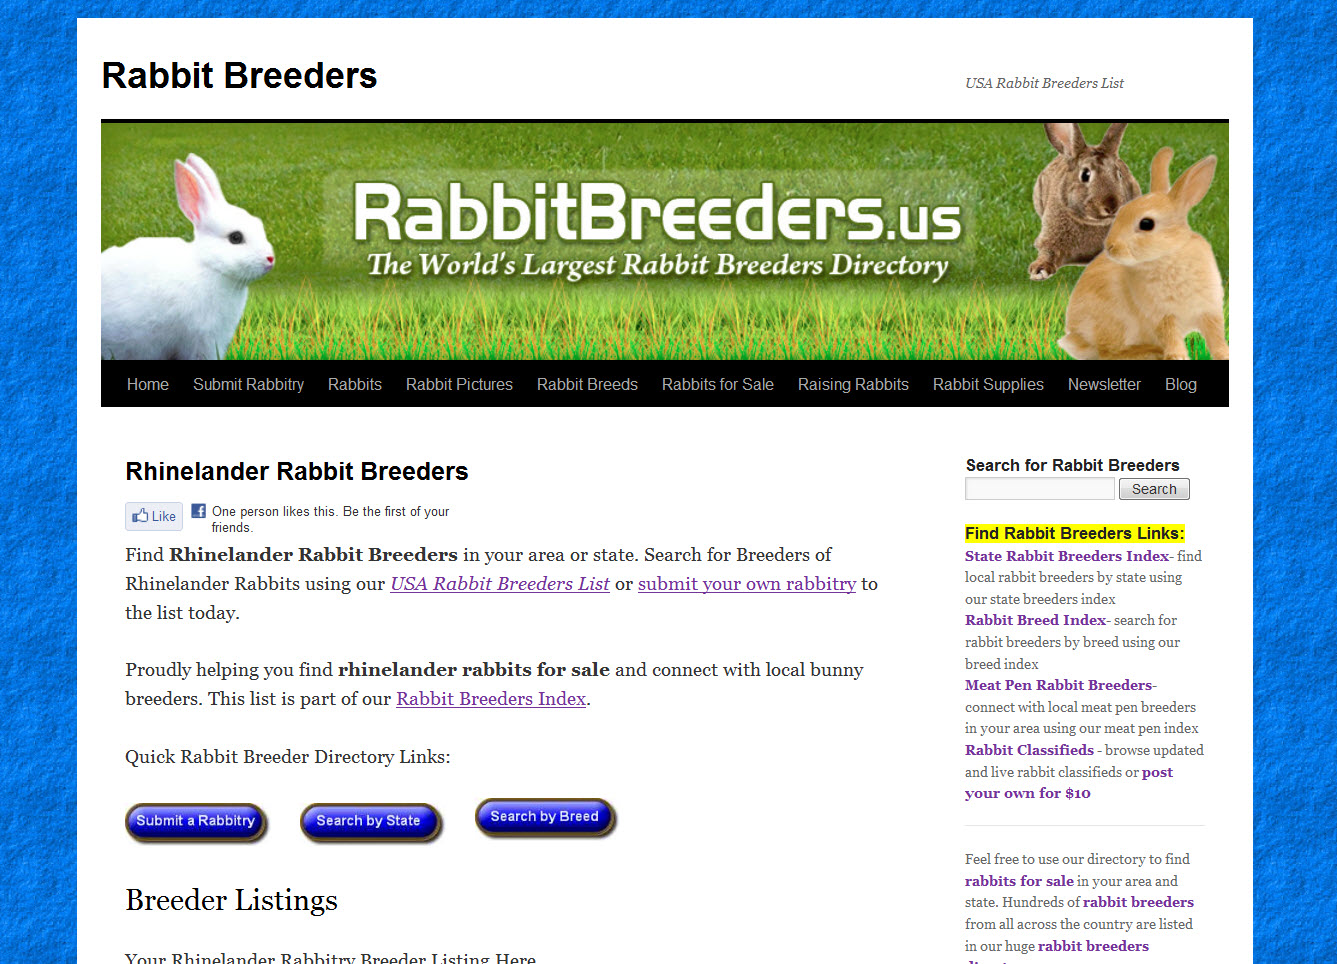 Rhinelander Rabbits for Sale